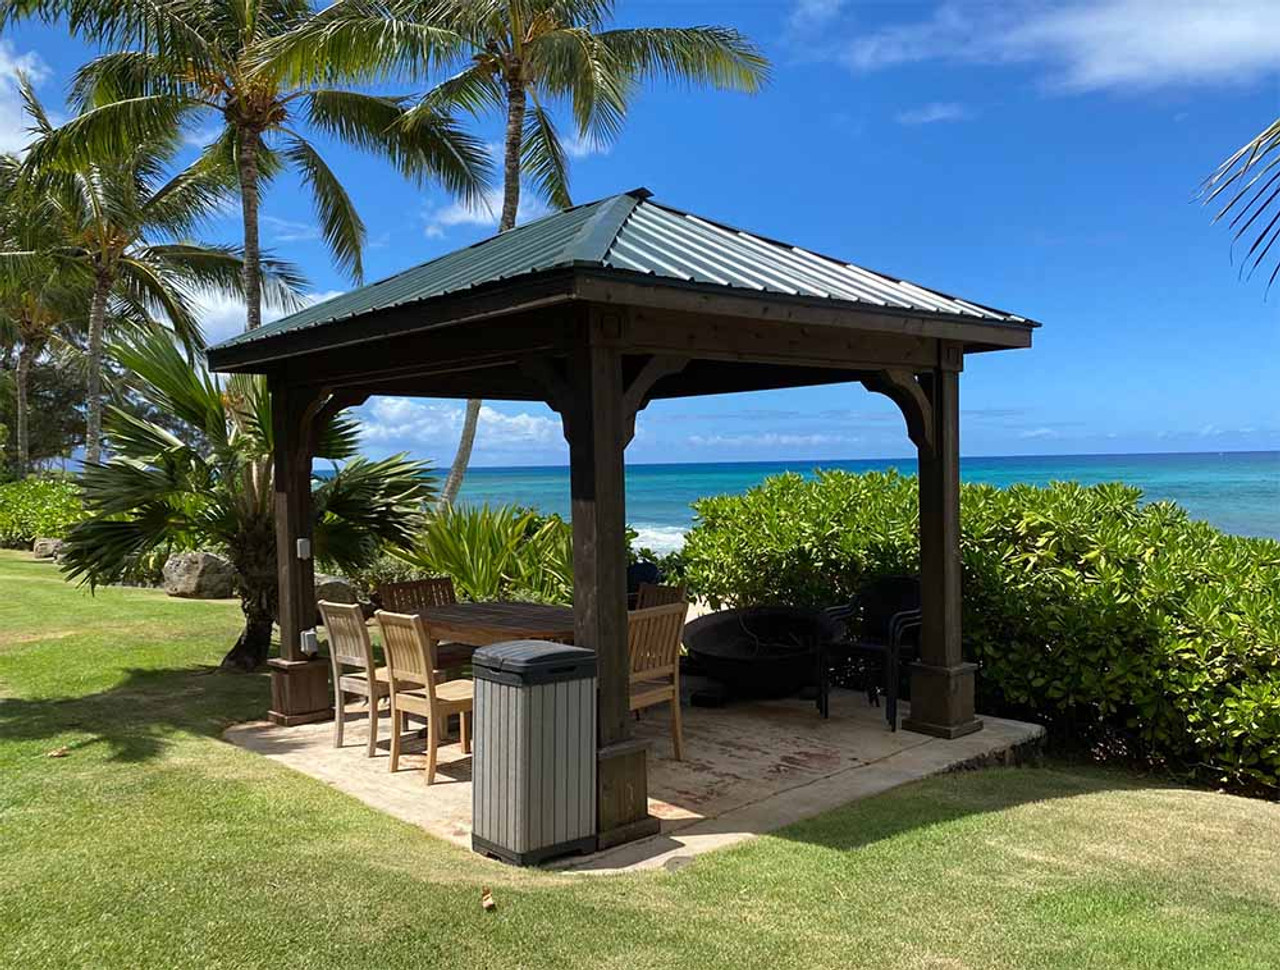 10x12 Western Red Cedar Traditional (Hip) Roof Pavilion Honolulu, Hawaii